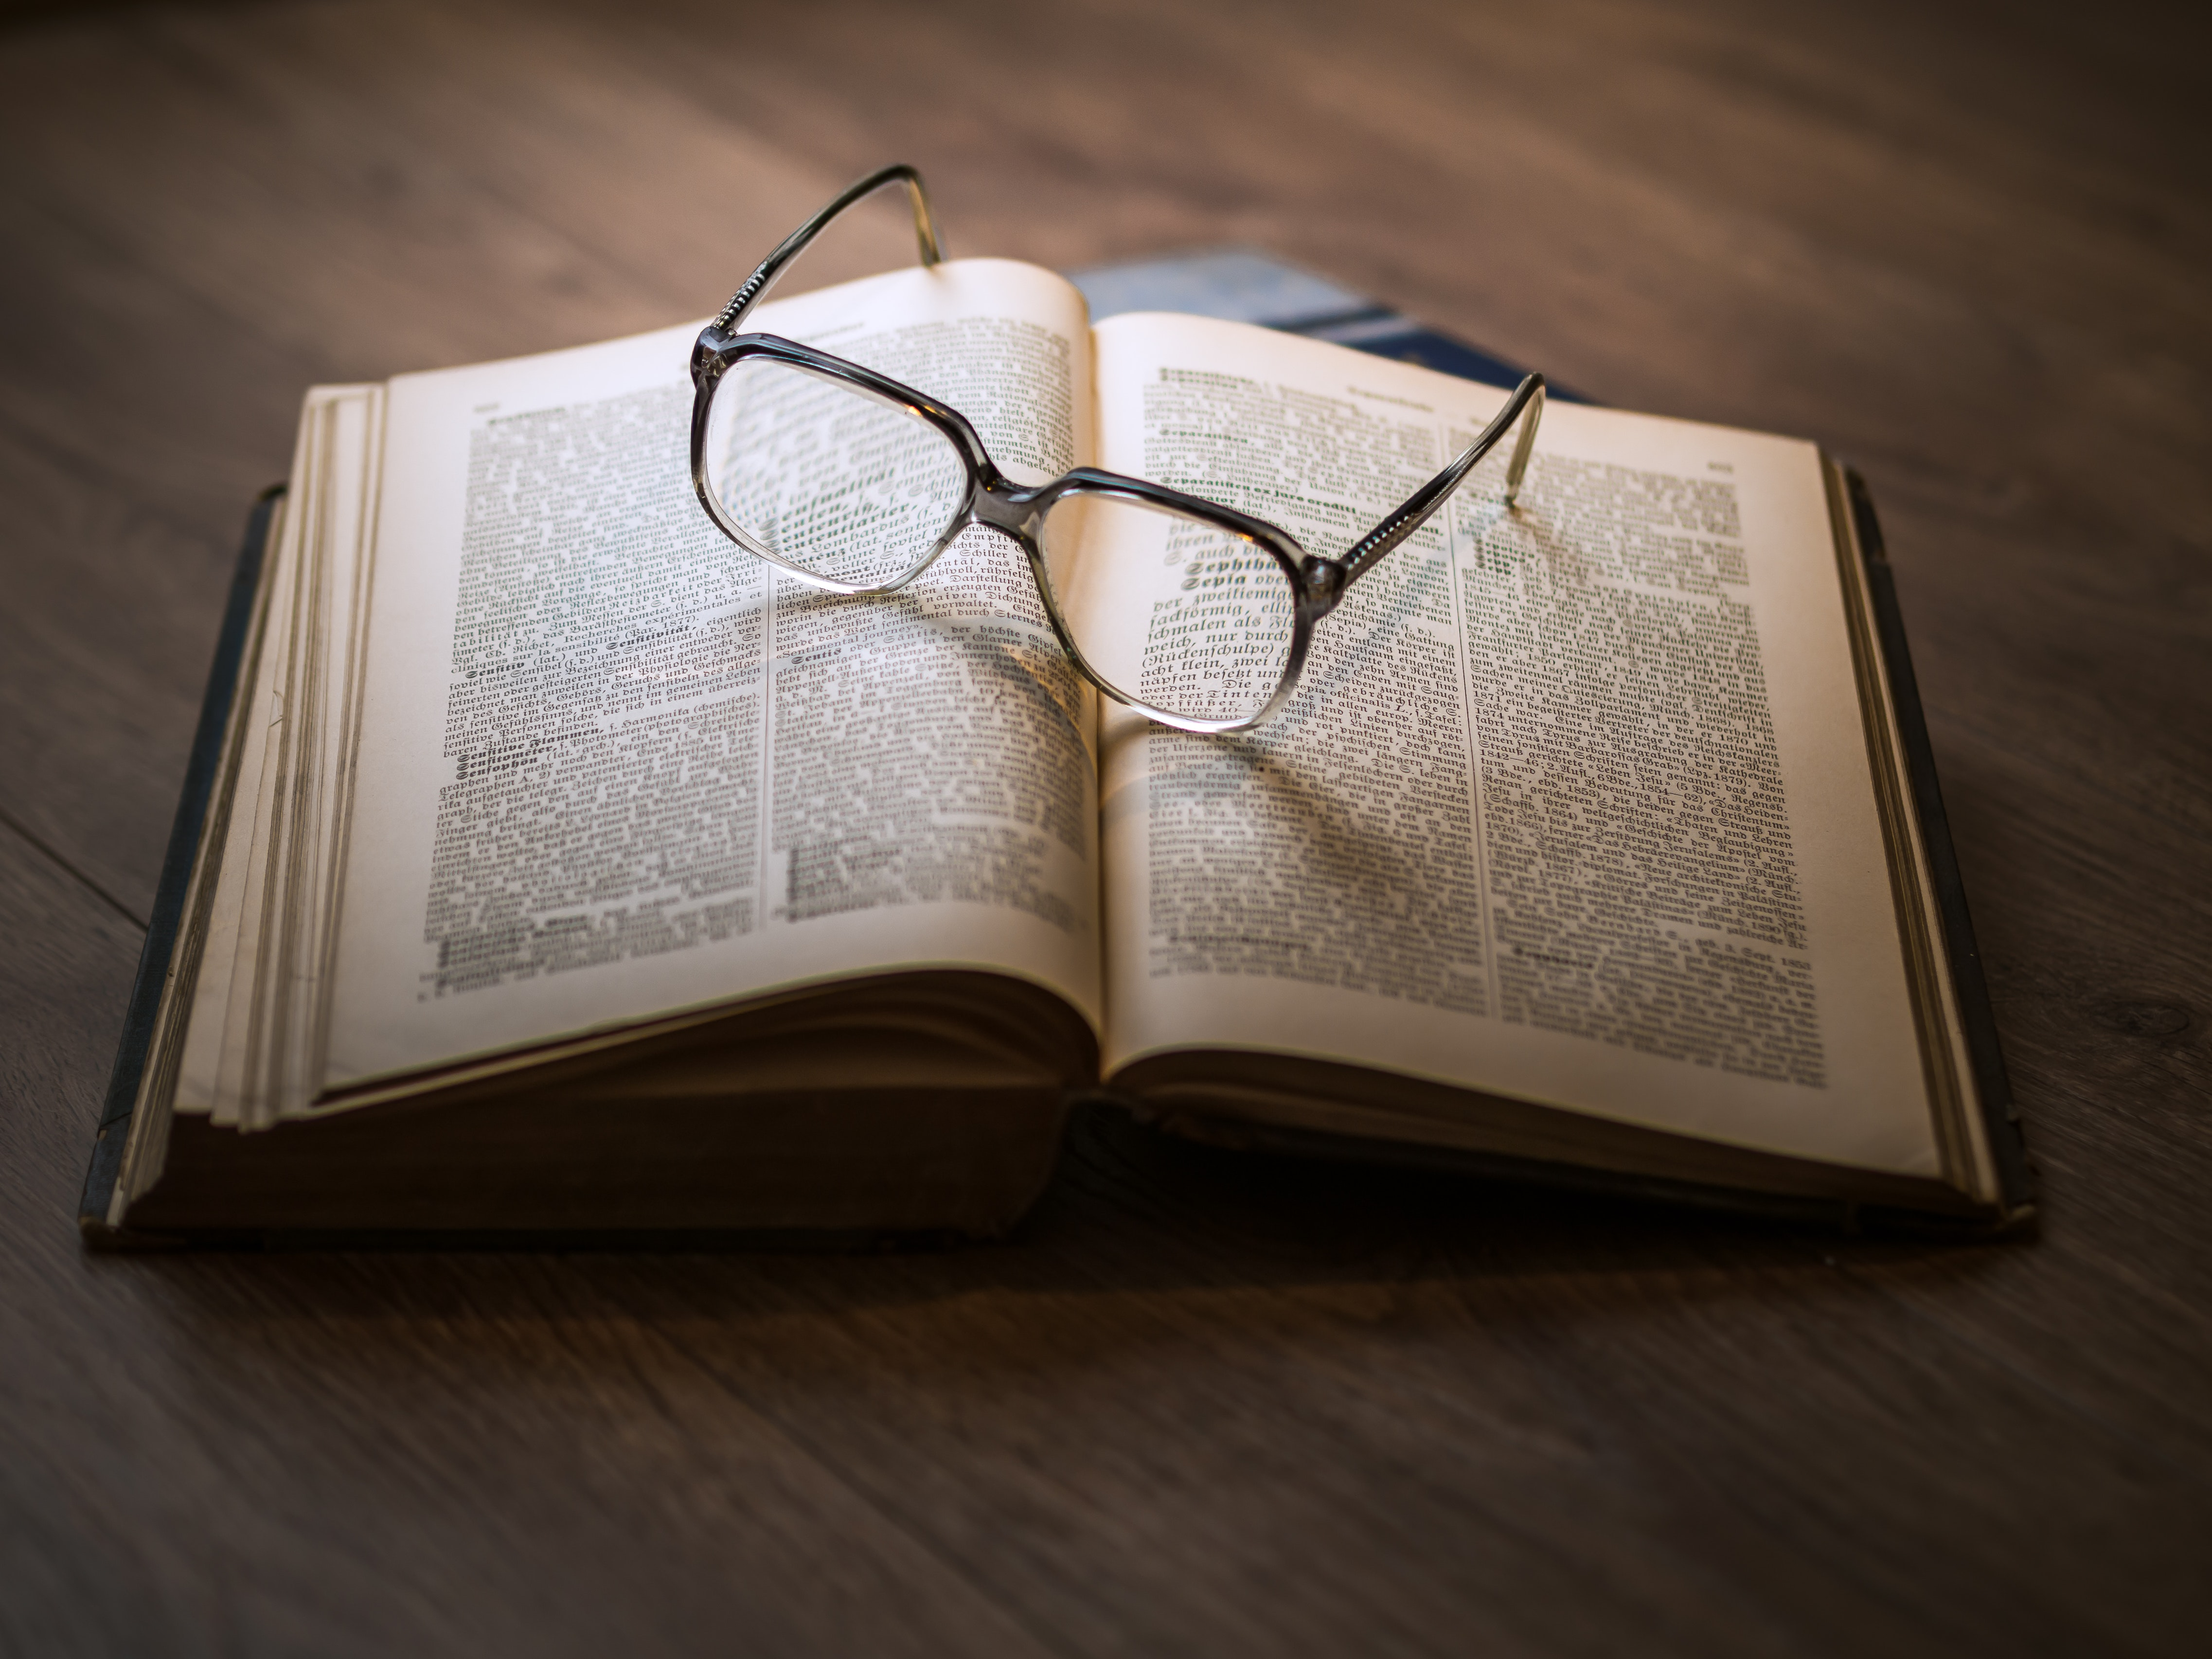 Reading is a great way for business leaders to work on professional development